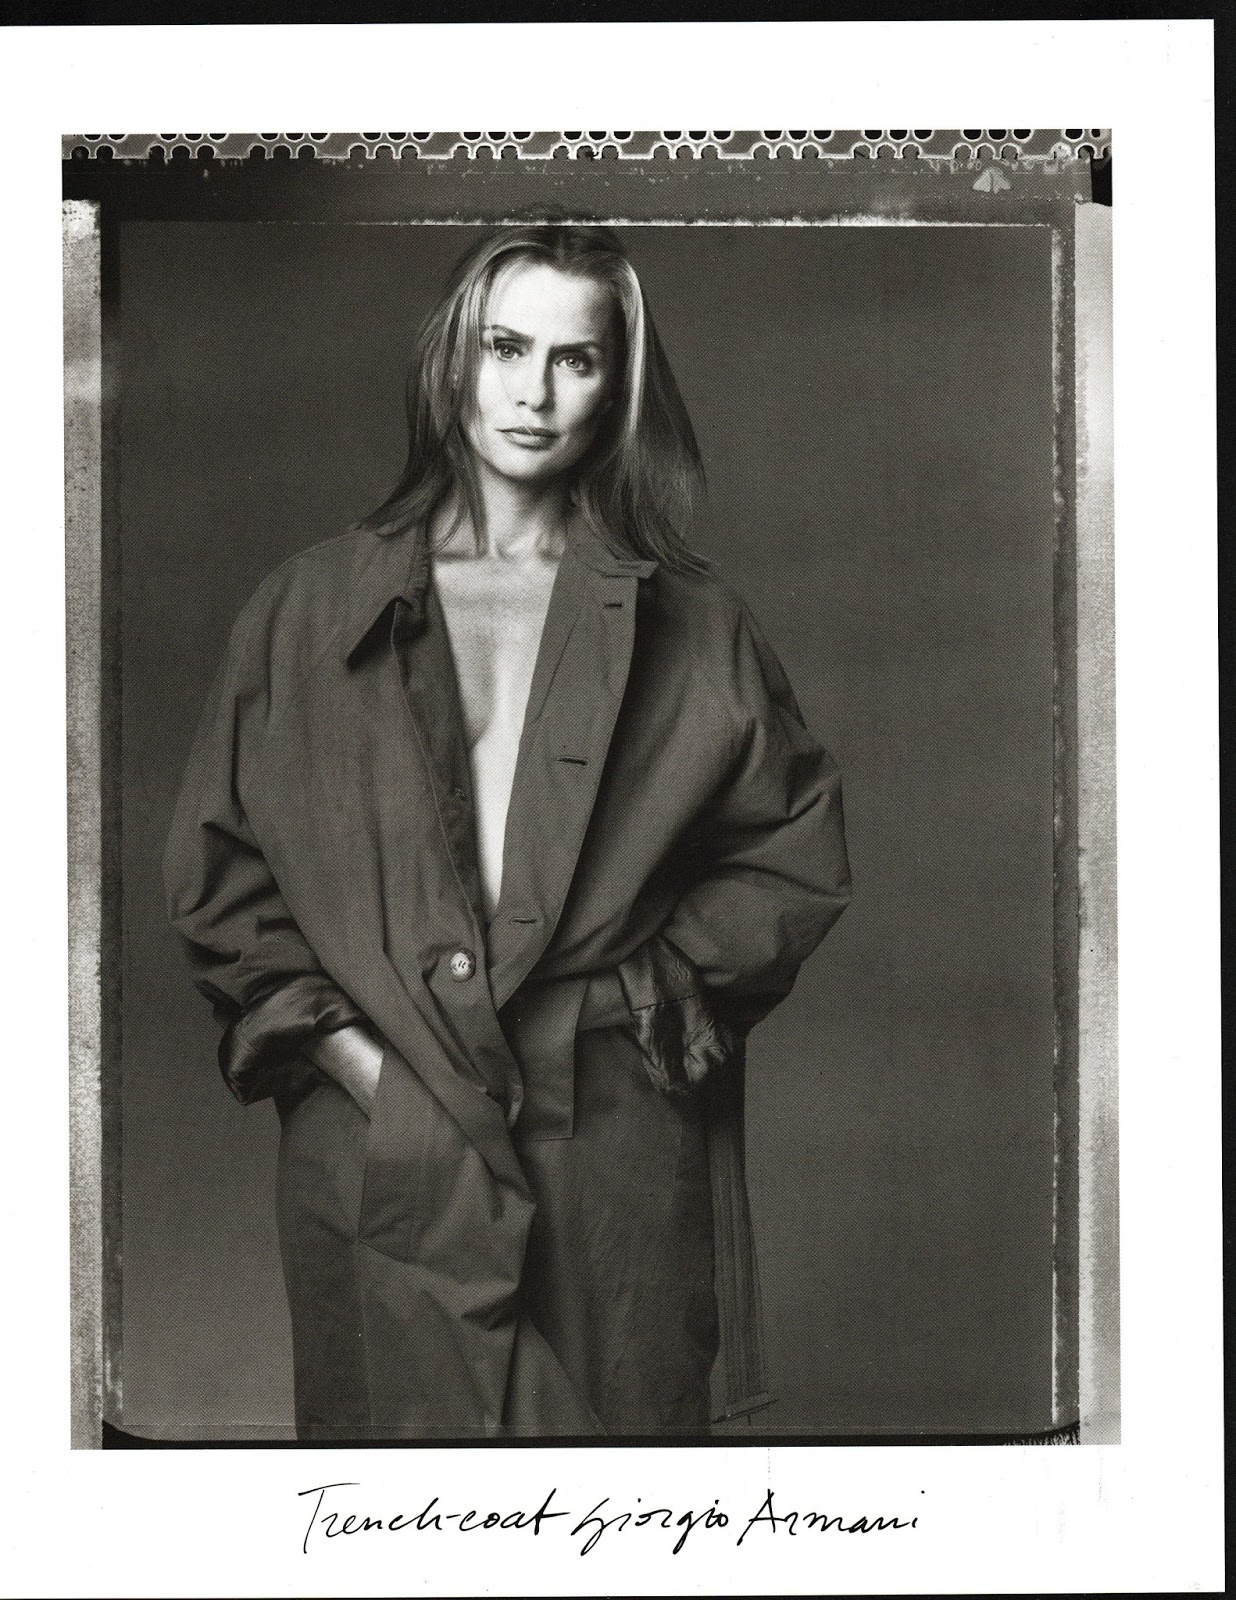 Lauren Hutton wearing Giorgio Armani, Armani Jeans & Emporio Armani photographed by Steven Meisel for Vogue Italia December 1993